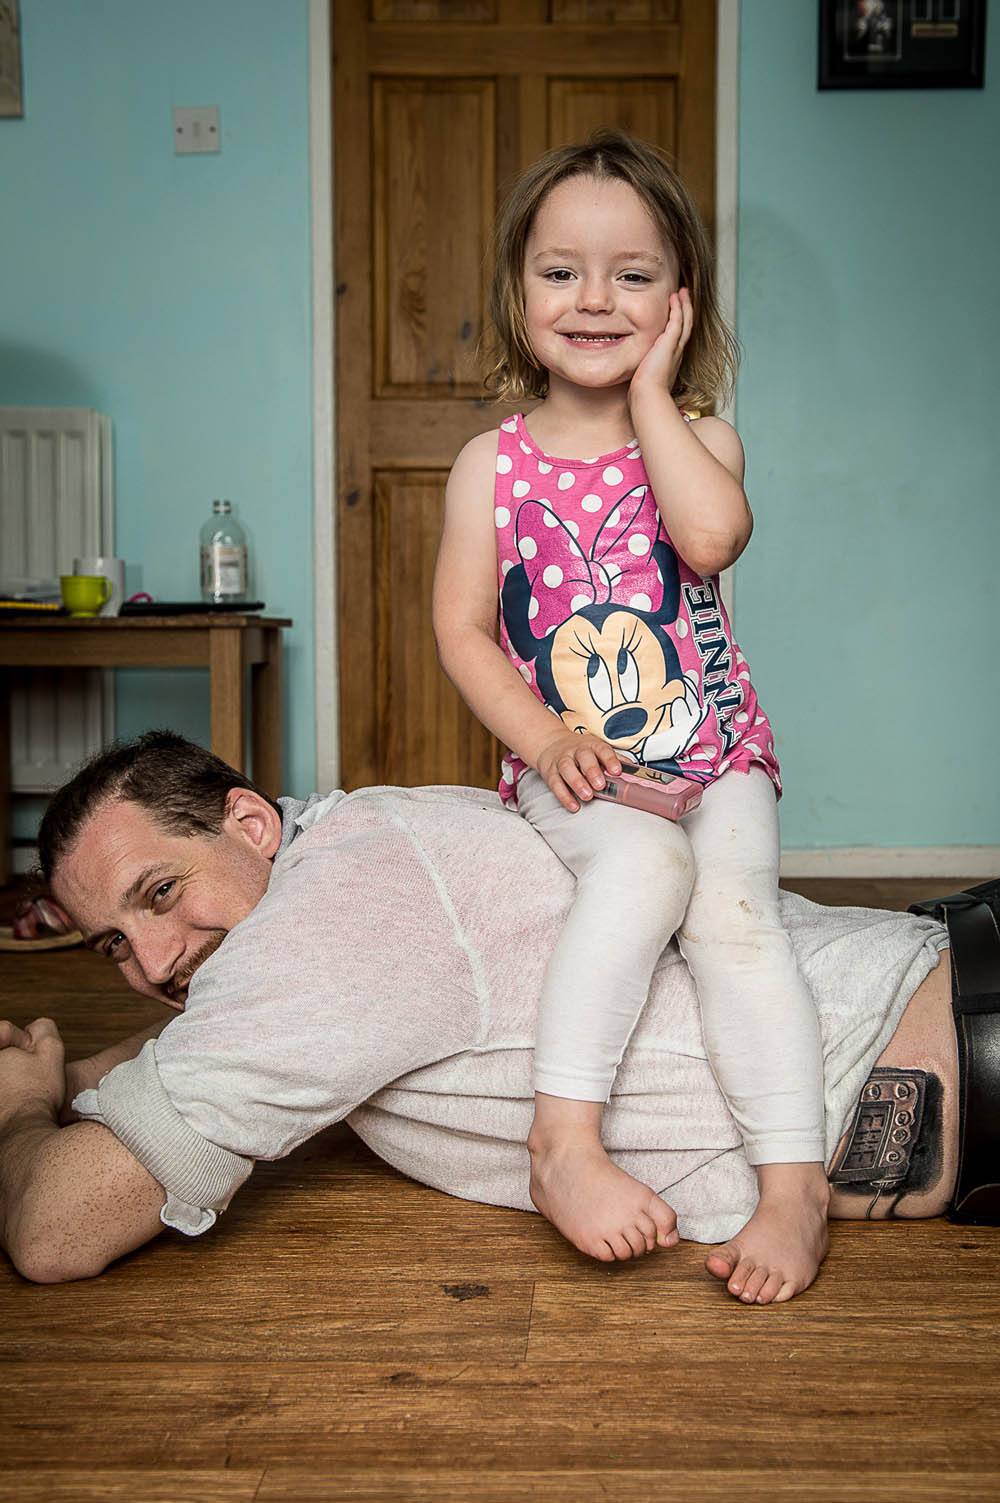 IN PIC................. Alan Hogg and his daughter Abigail, 3 (c) Wullie Marr/DEADLINE NEWS For pic details, contact Wullie Marr........... 07989359845